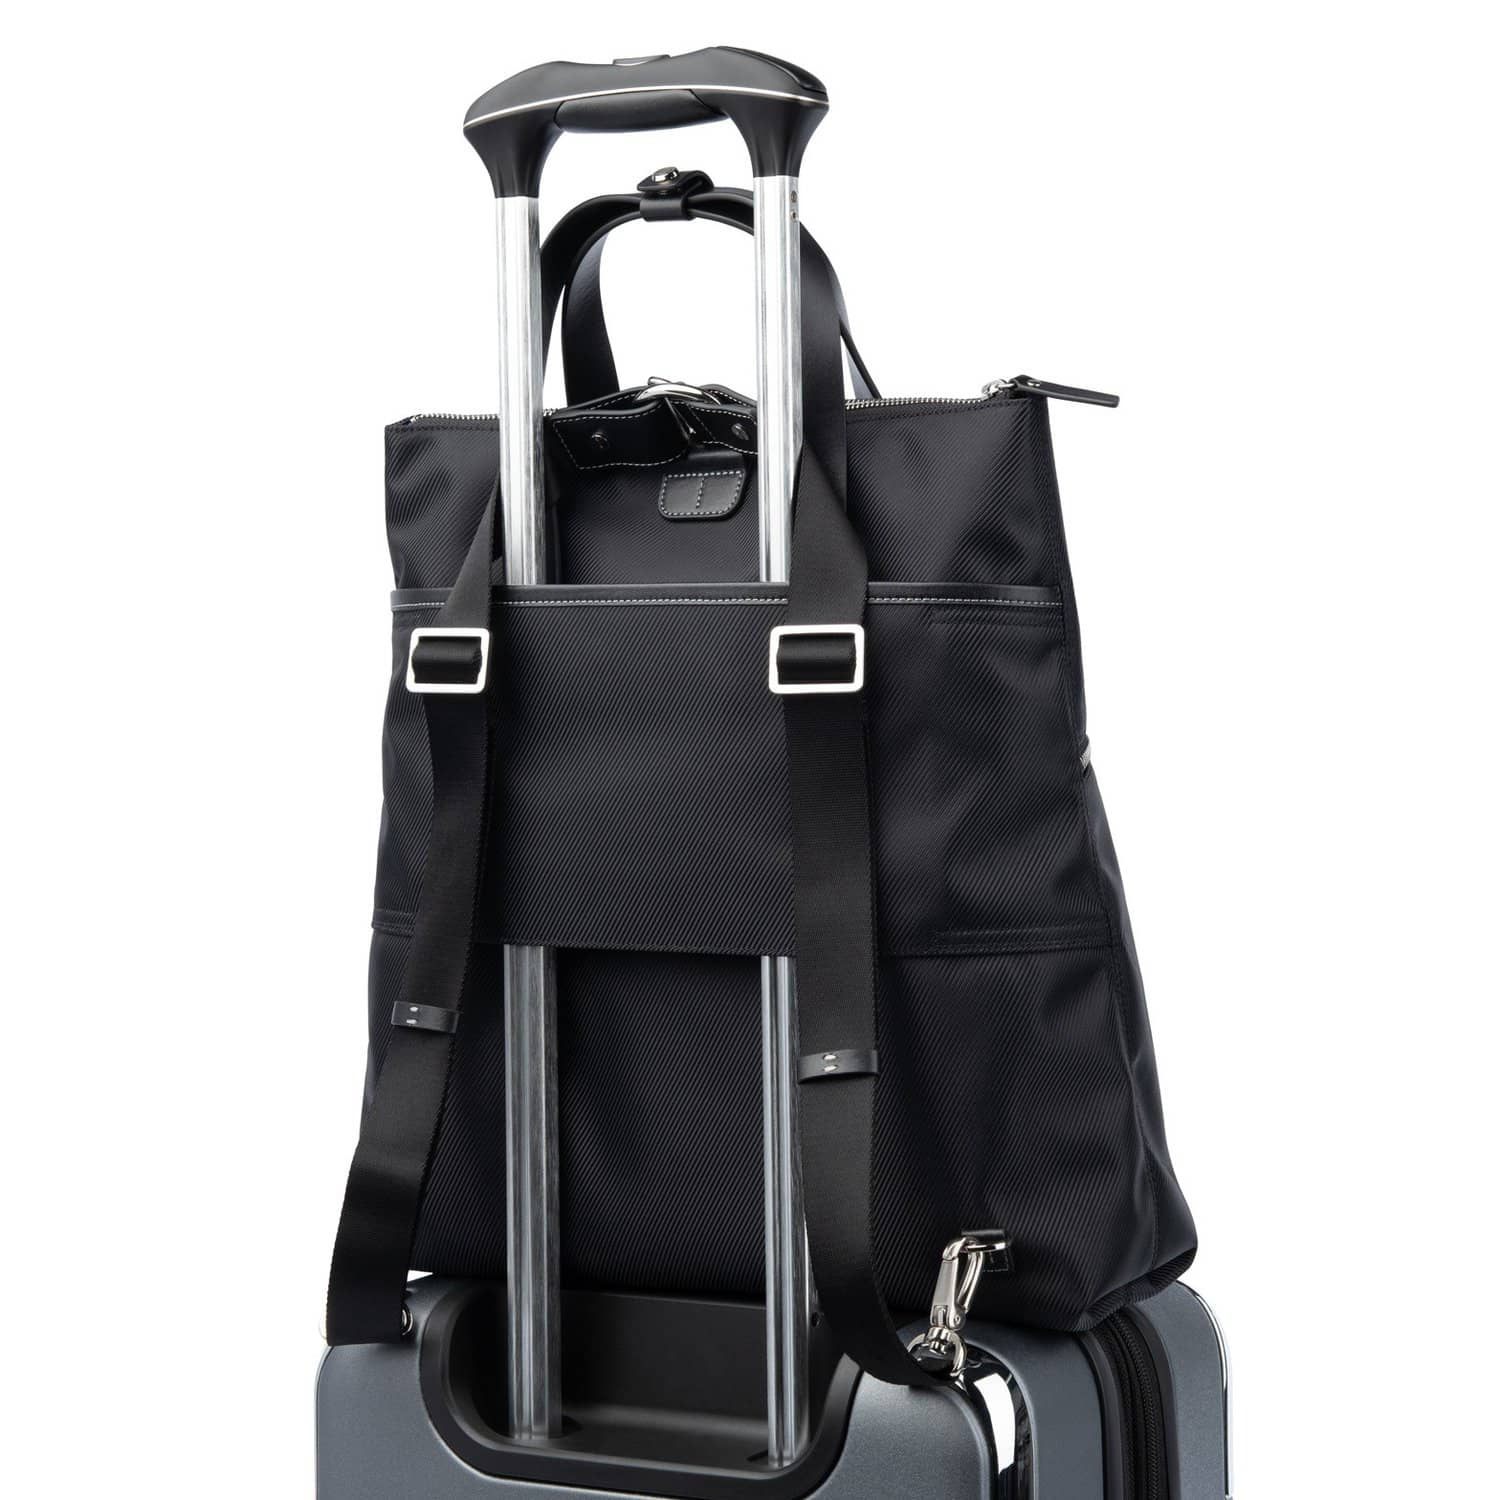 Travelpro® x Travel + Leisure® Women's Convertible Tote